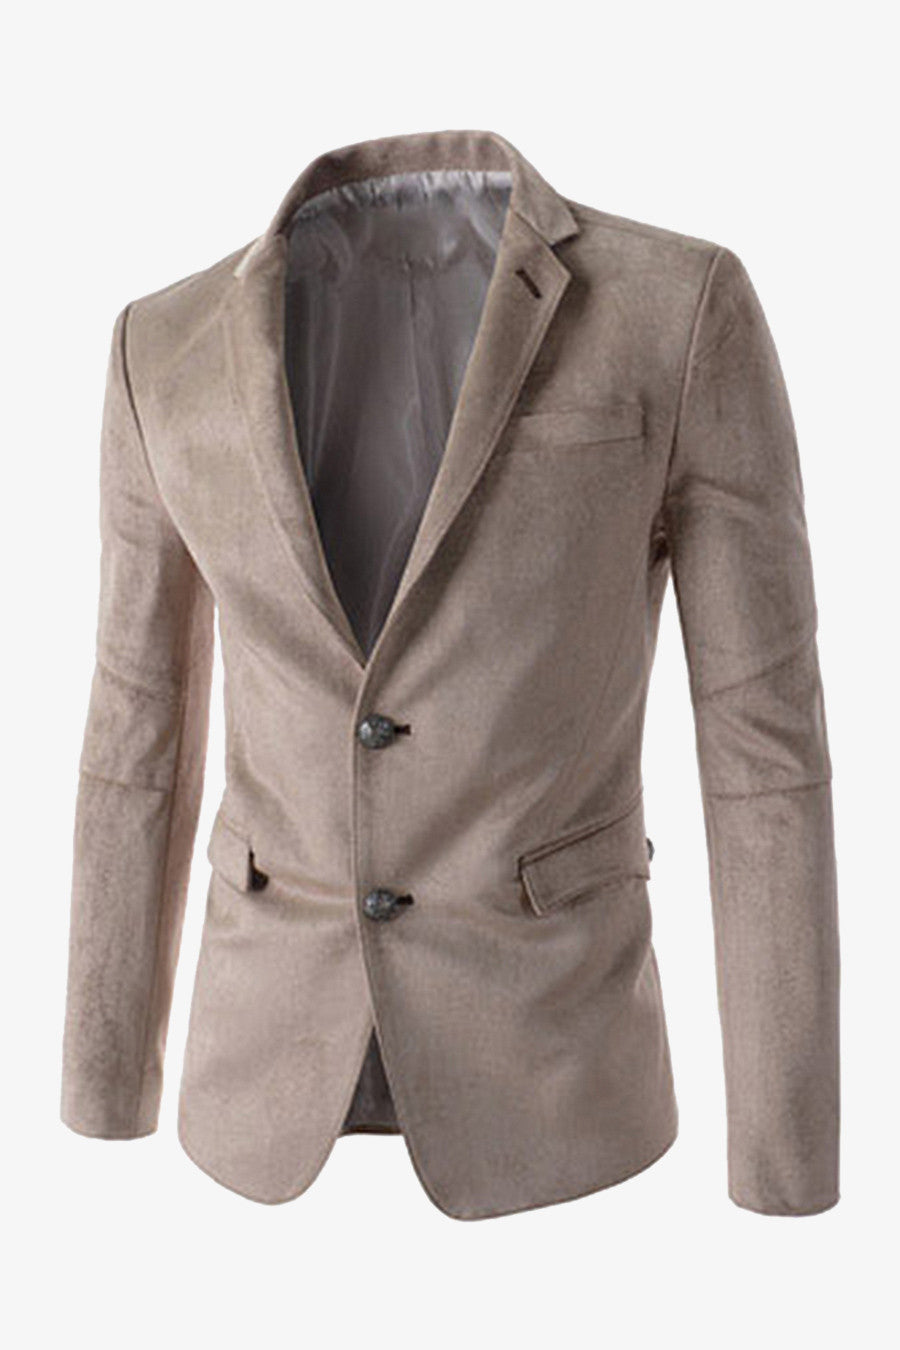 Suede 2-Button Suit Beige Jacket